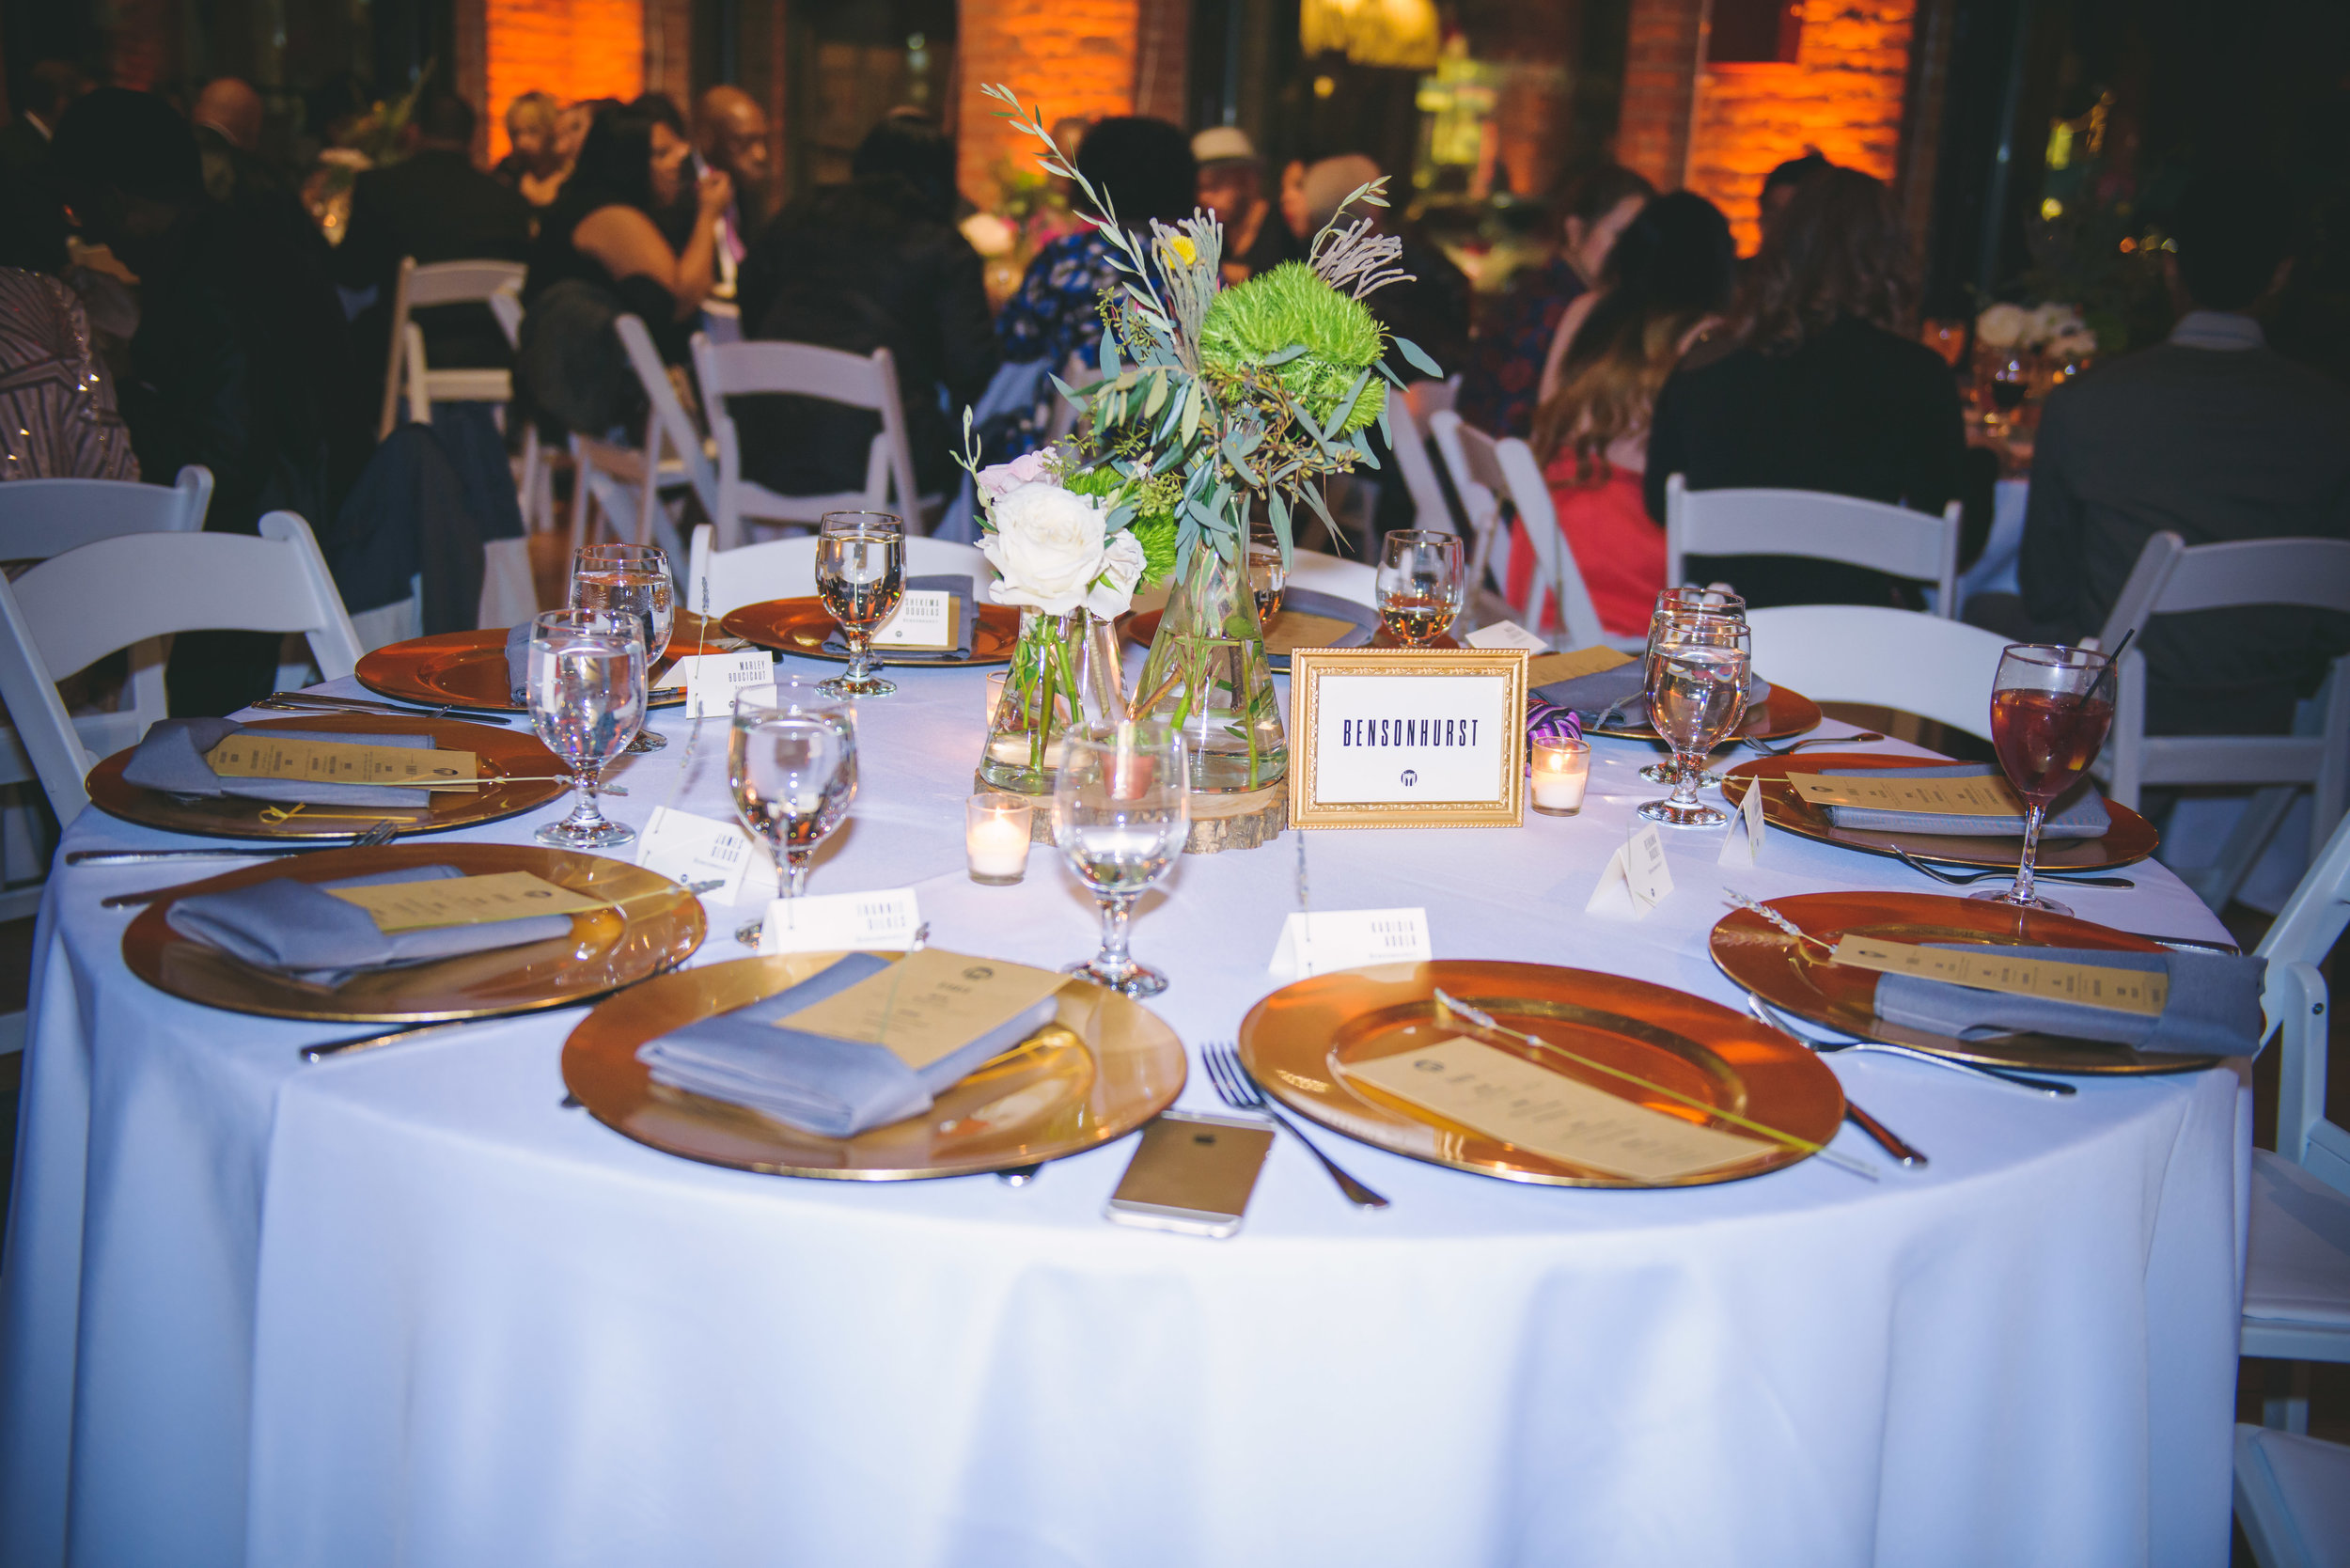 Great detail shot of their centerpieces and tablescape.